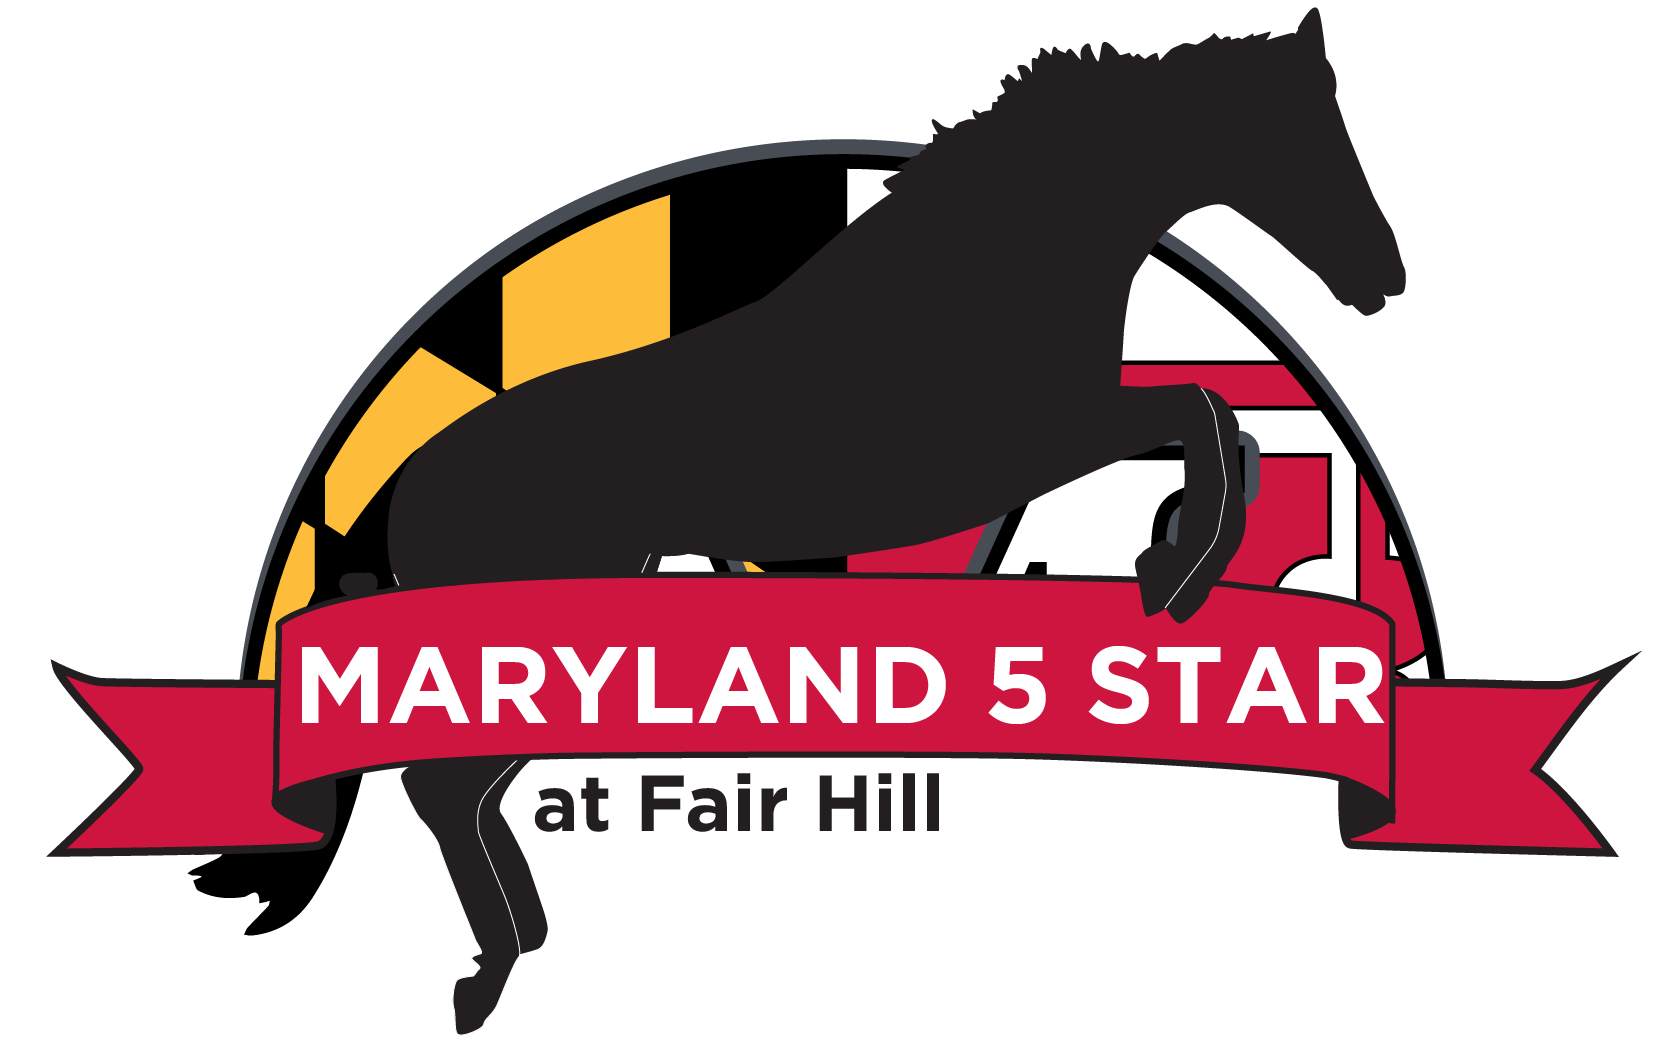 Maryland 5 Star at Fair Hill